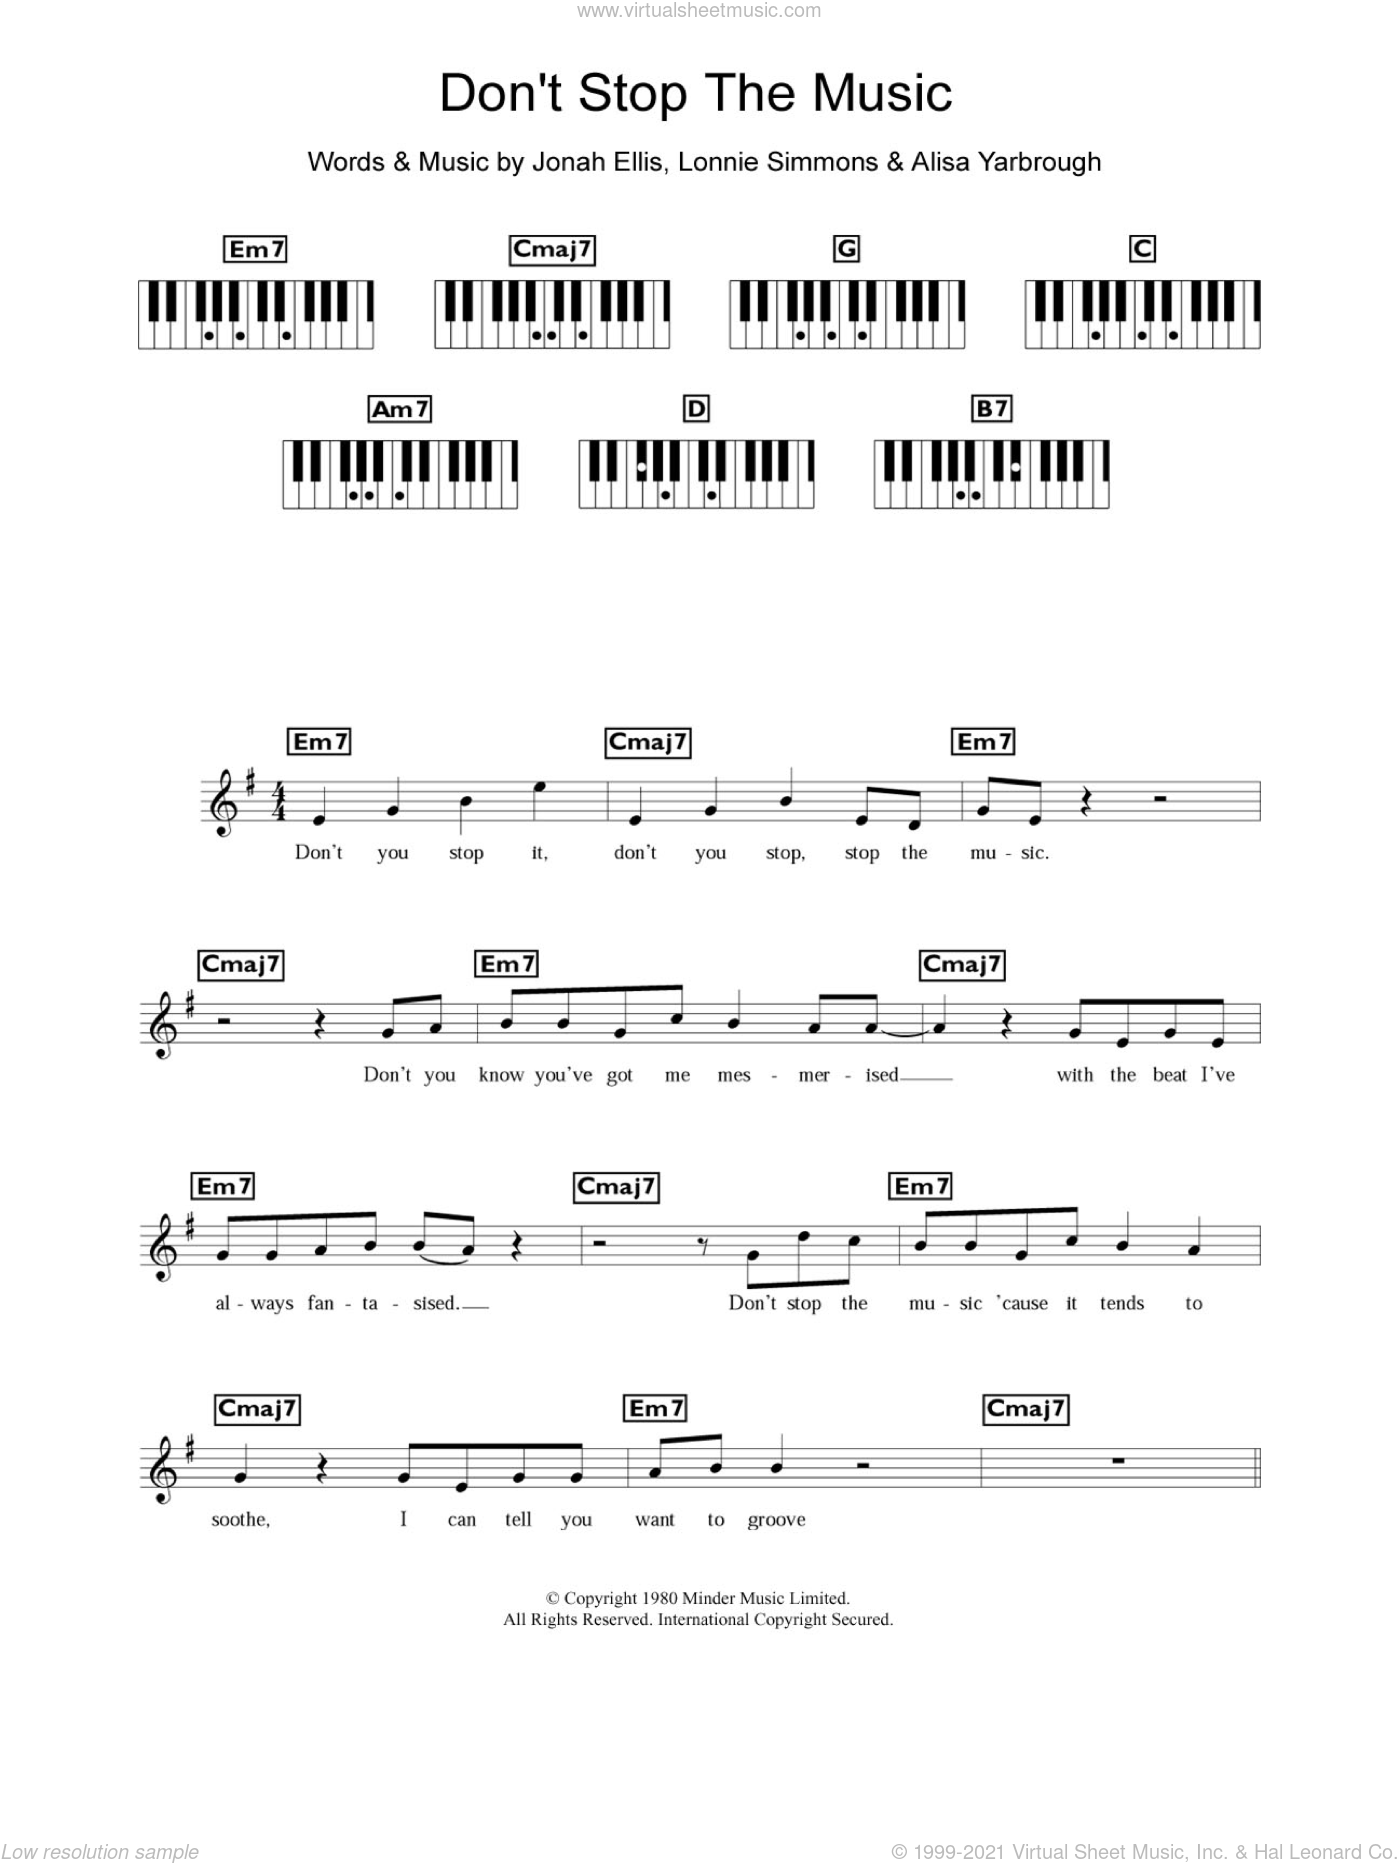 Don't Stop The Music sheet music for piano solo (chords, lyrics, melody) by Yarbrough and Peoples, Alisa Yarbrough, Jonah Ellis and Lonnie Simmons, intermediate piano (chords, lyrics, melody)